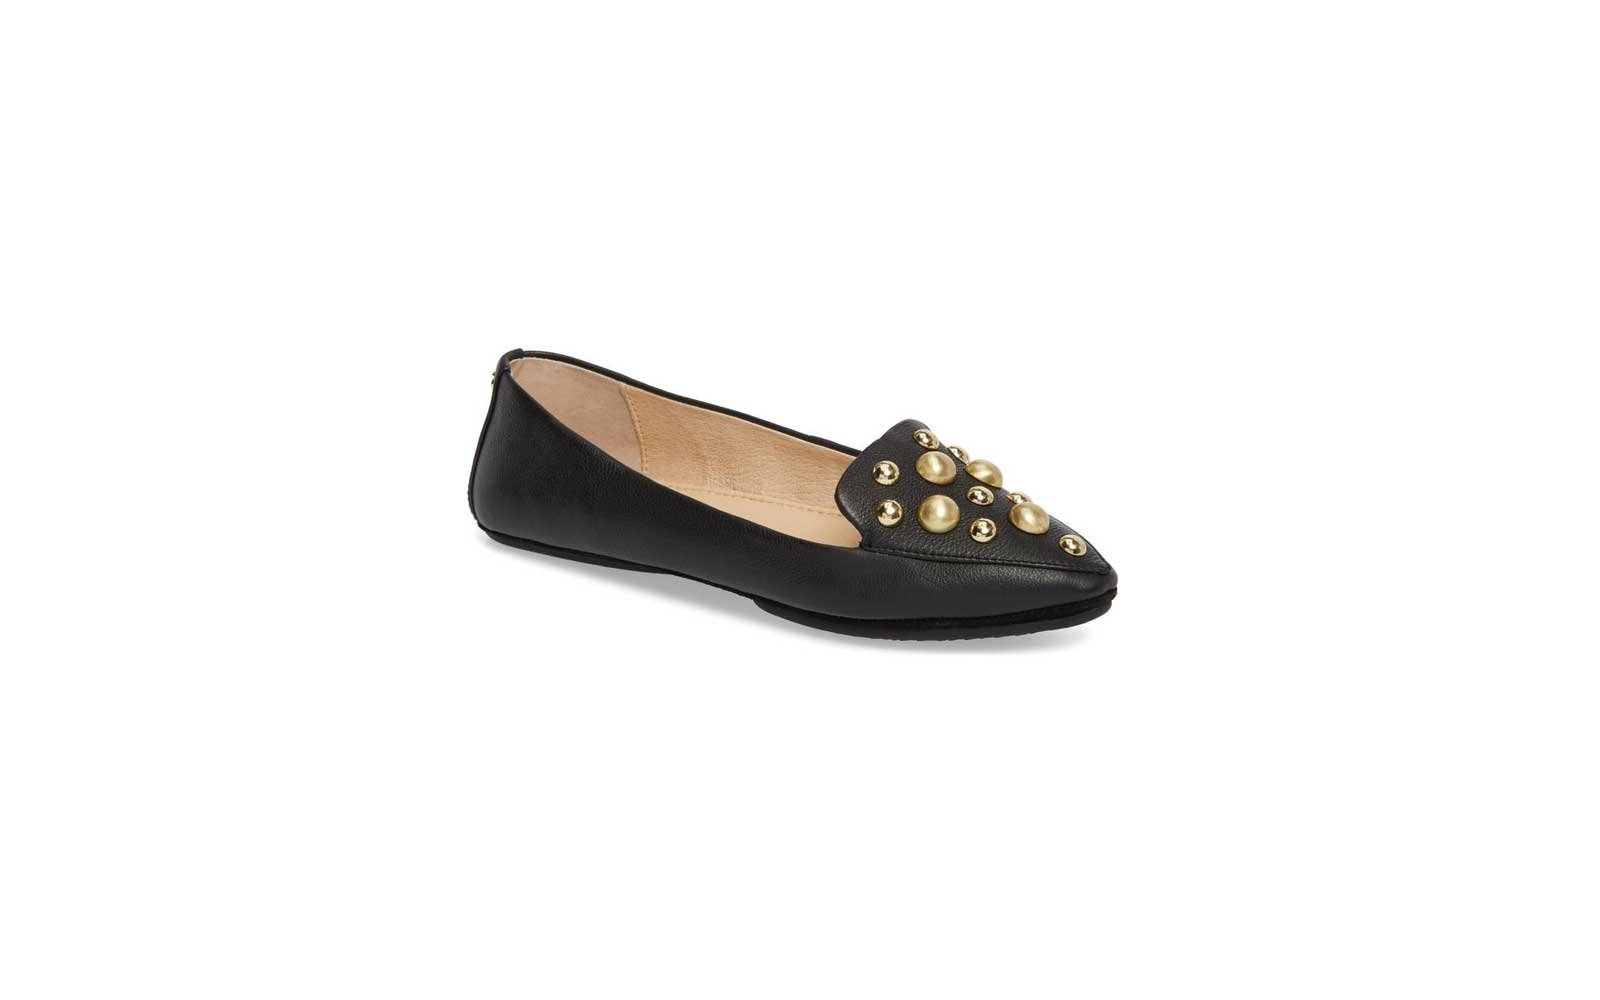 Yosi Samra Vera Studded Loafer in Black